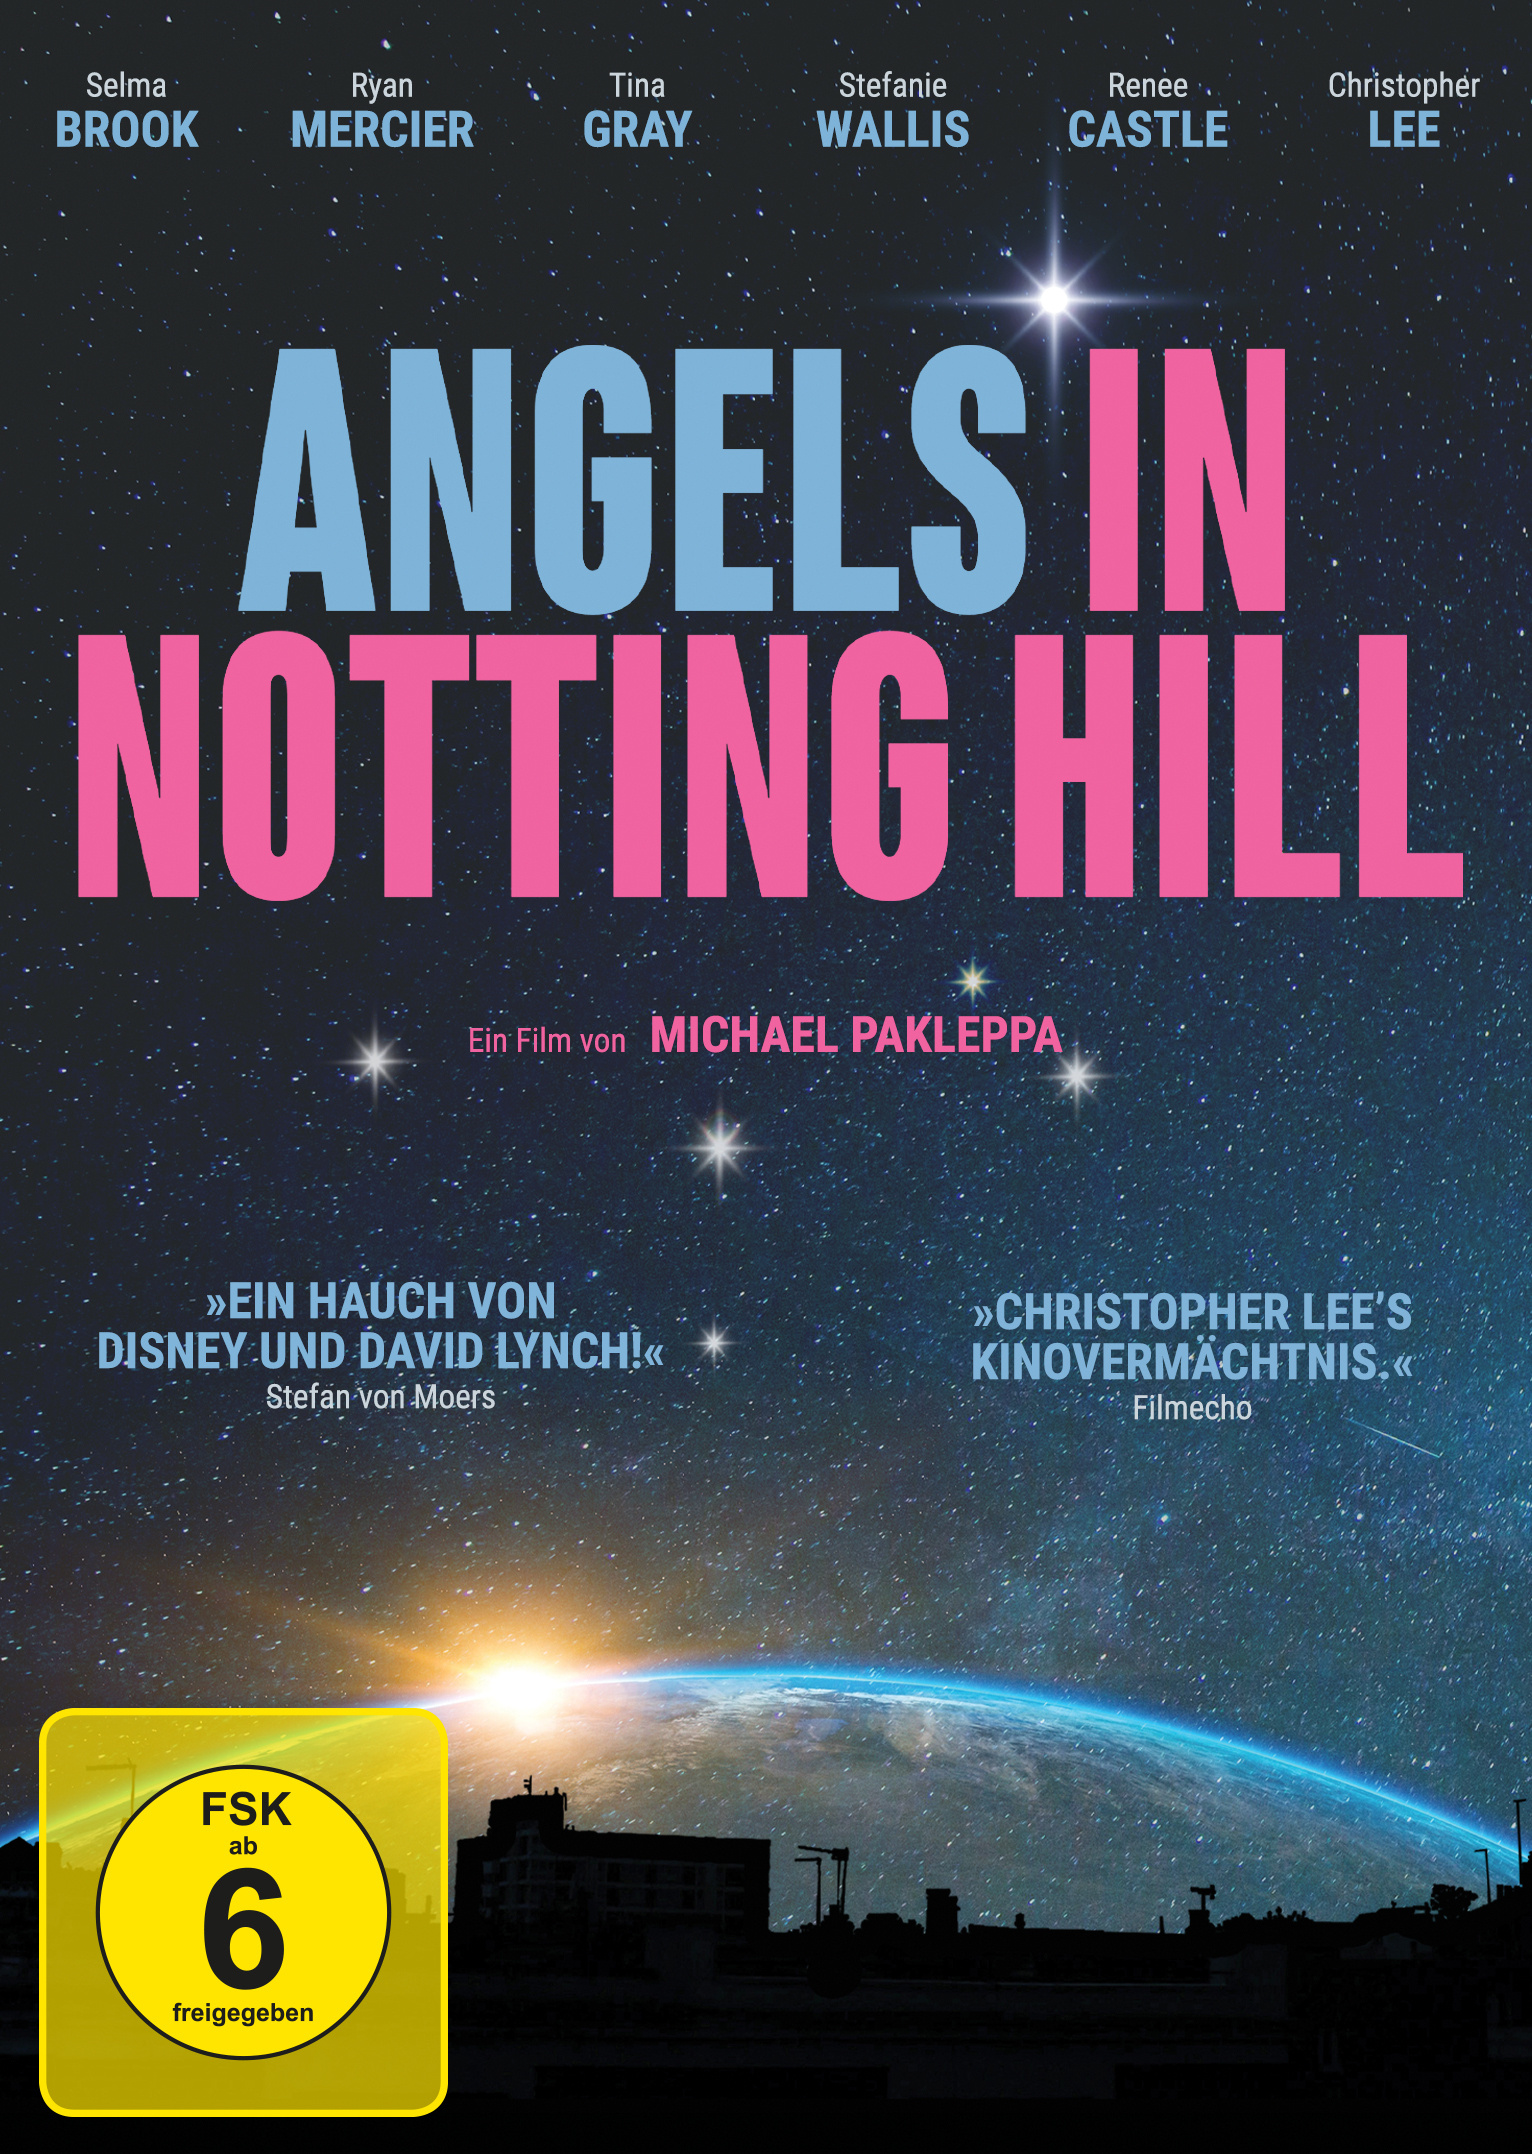 Image of Angels in Notting Hill